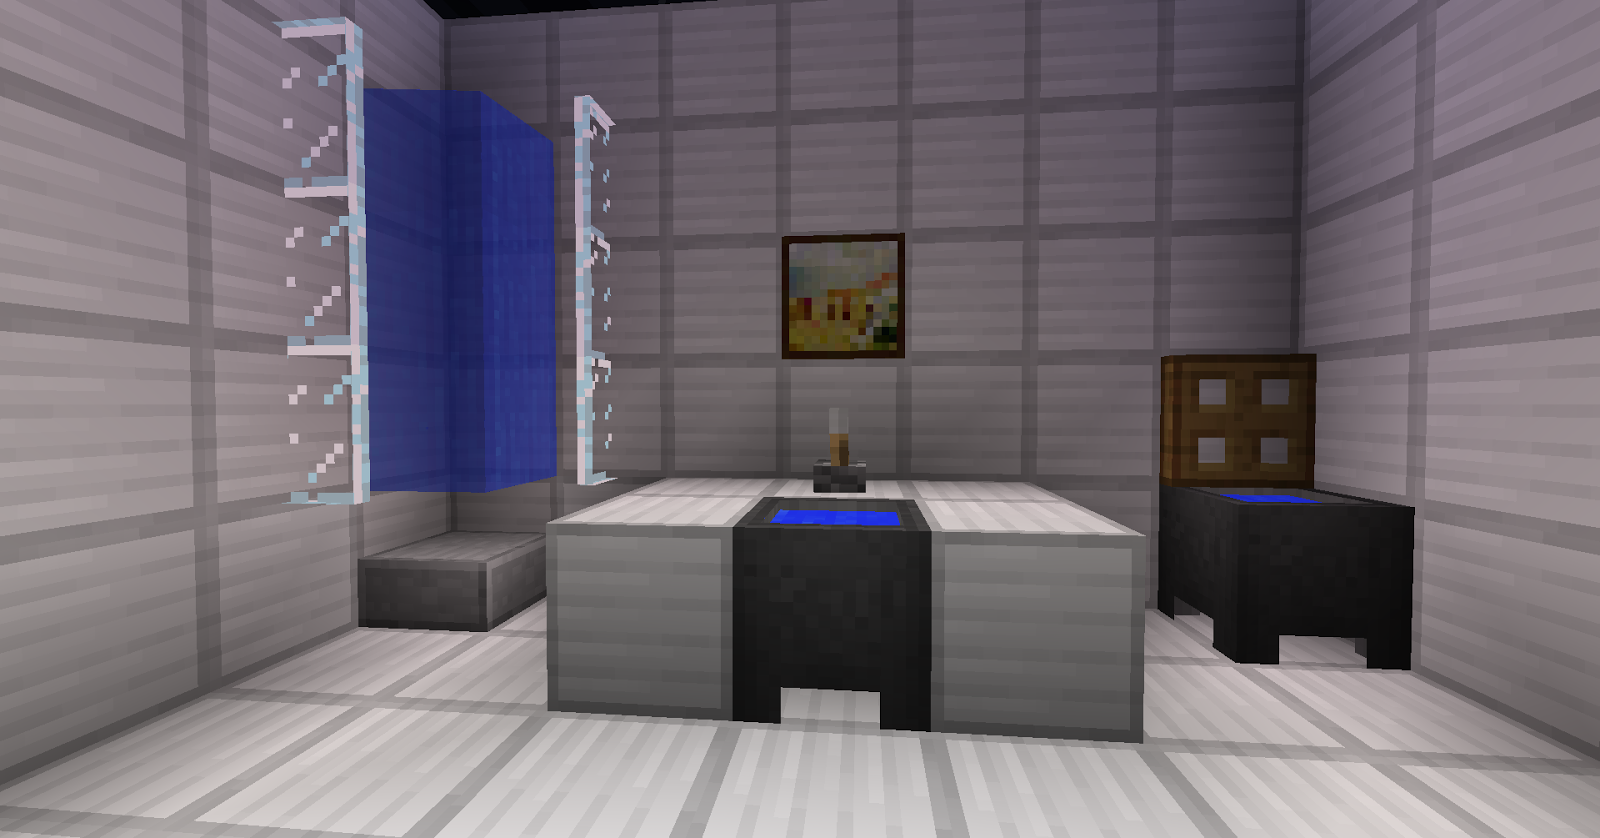 Minecraft Bathroom Ideas Minecraft Bathroom Design Too